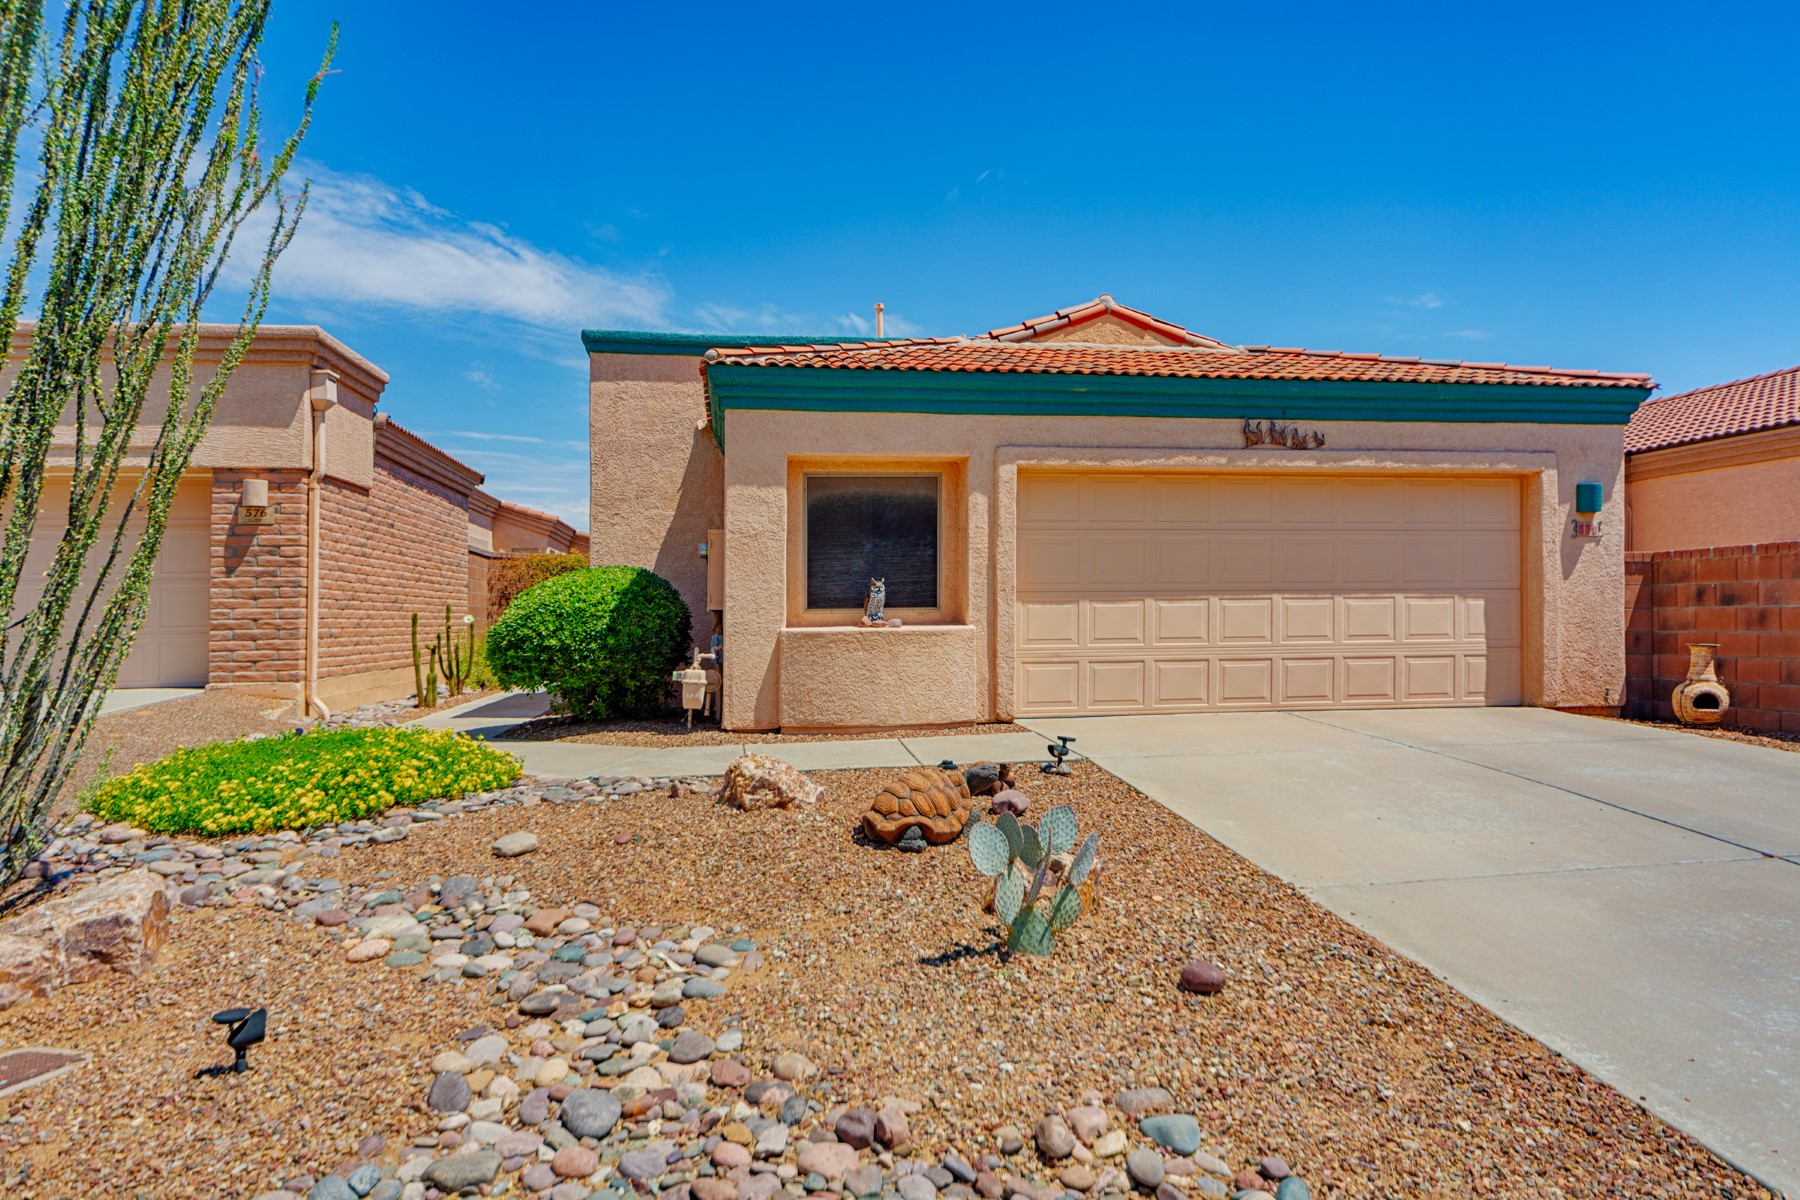 Single Family Homes for Active at Well Cared for Patio Home 570 W Union Bell Drive Green Valley, Arizona 85614 United States